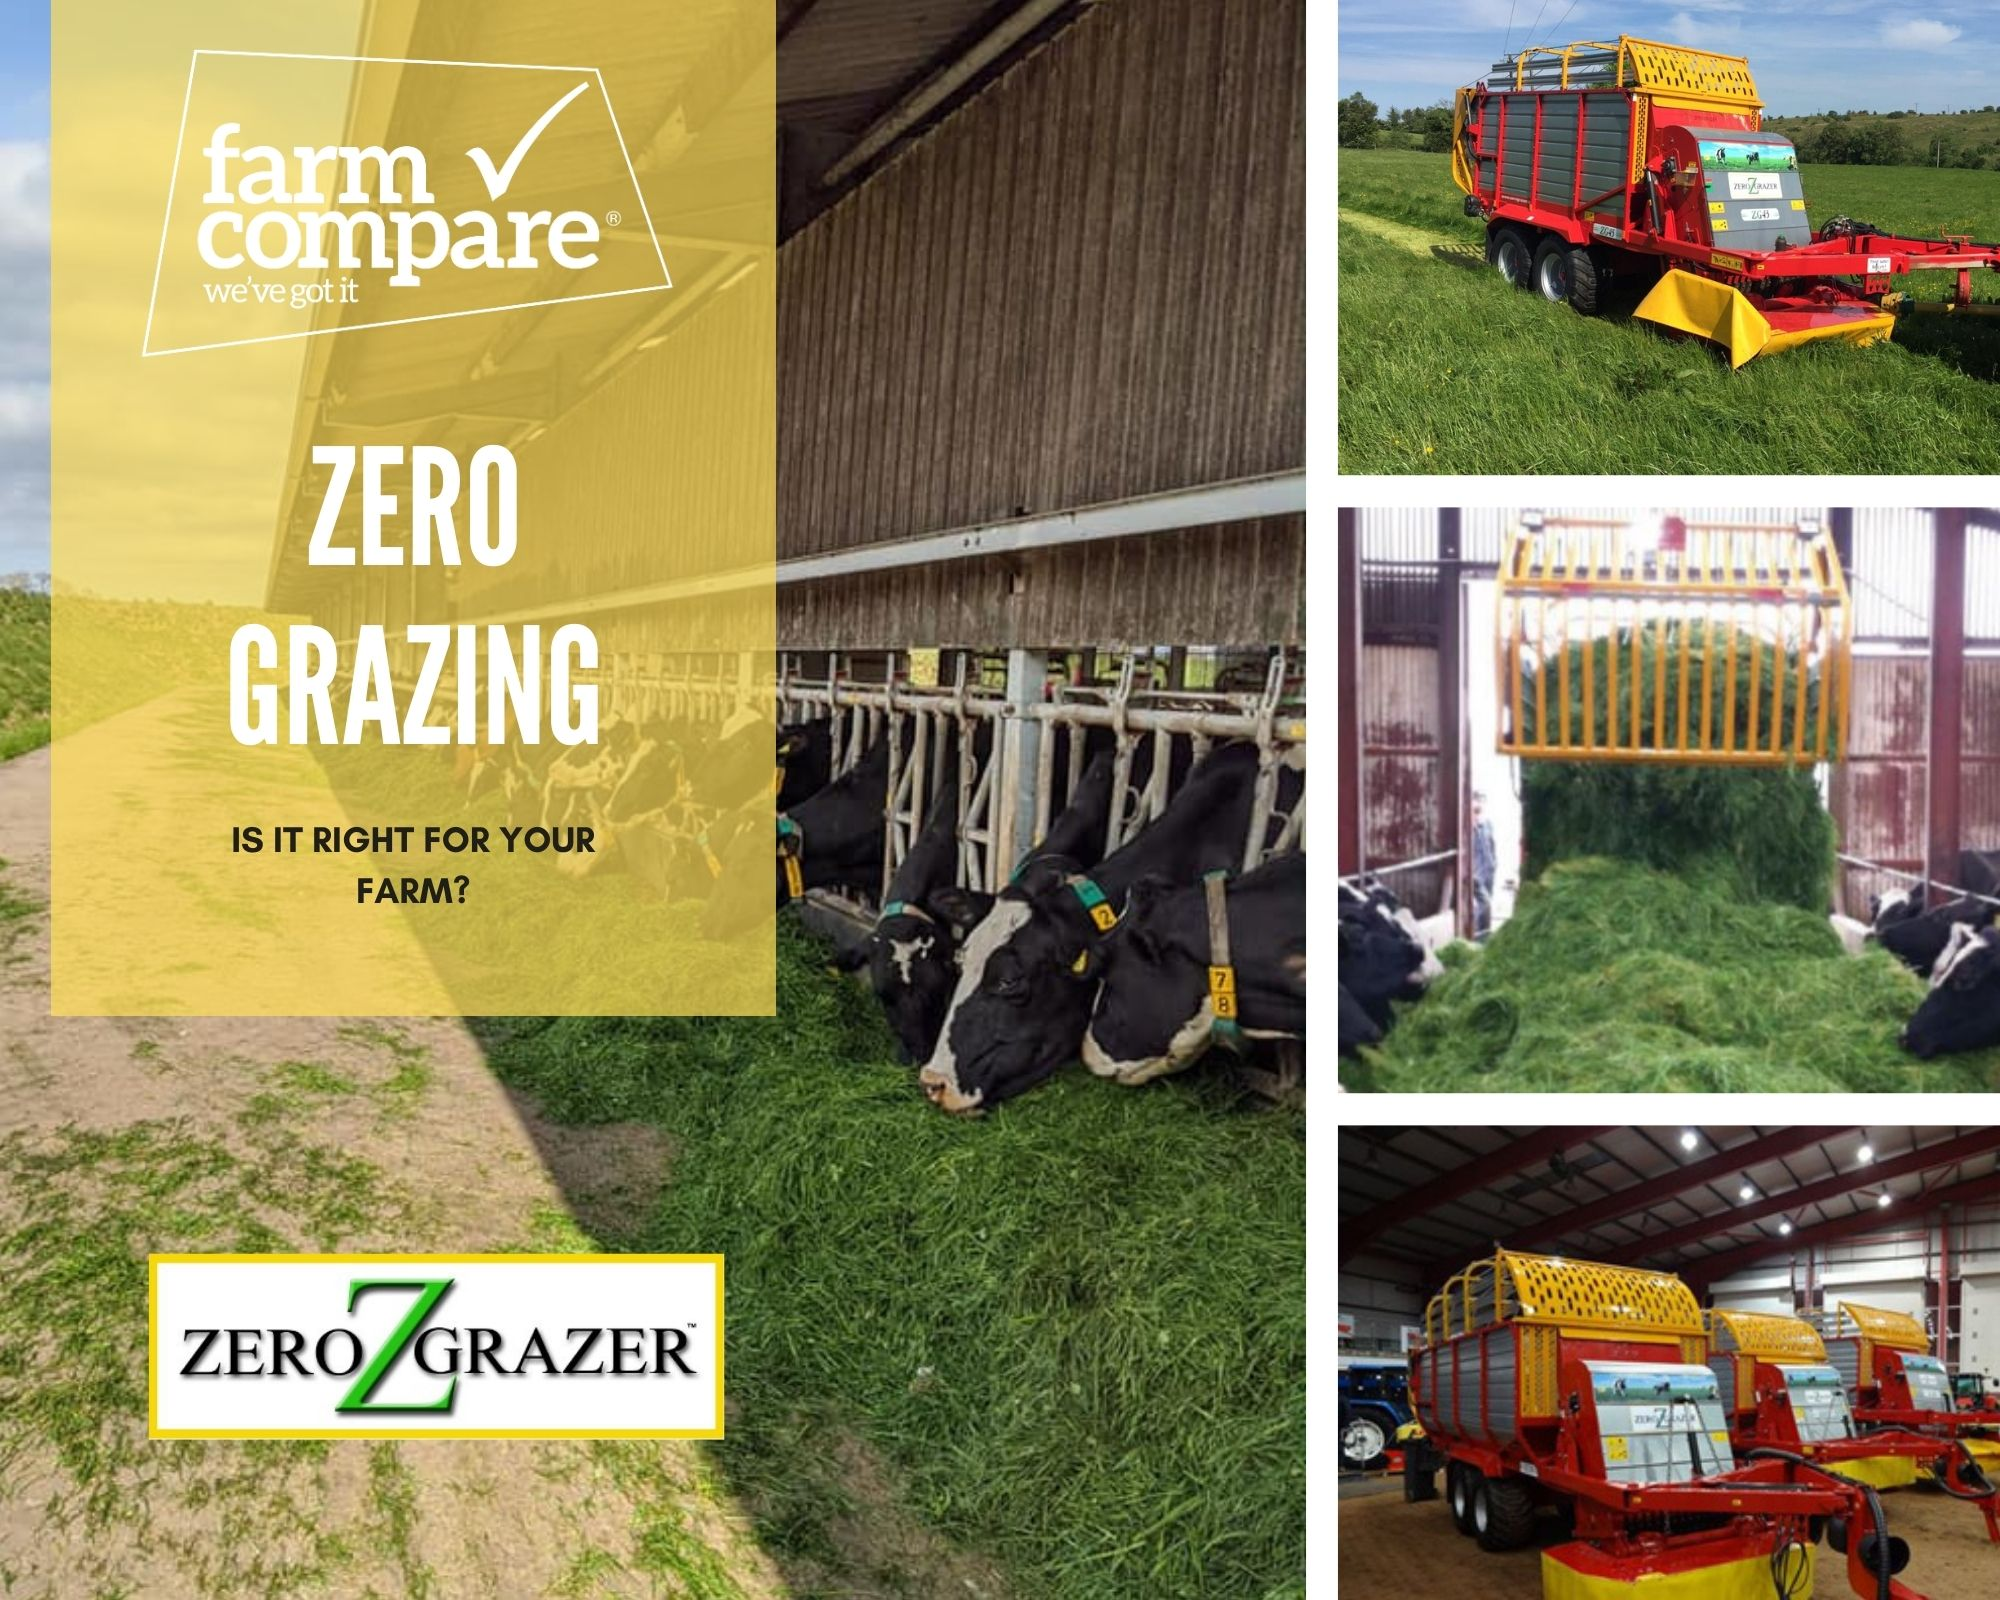 Growing interest in zero–grazing